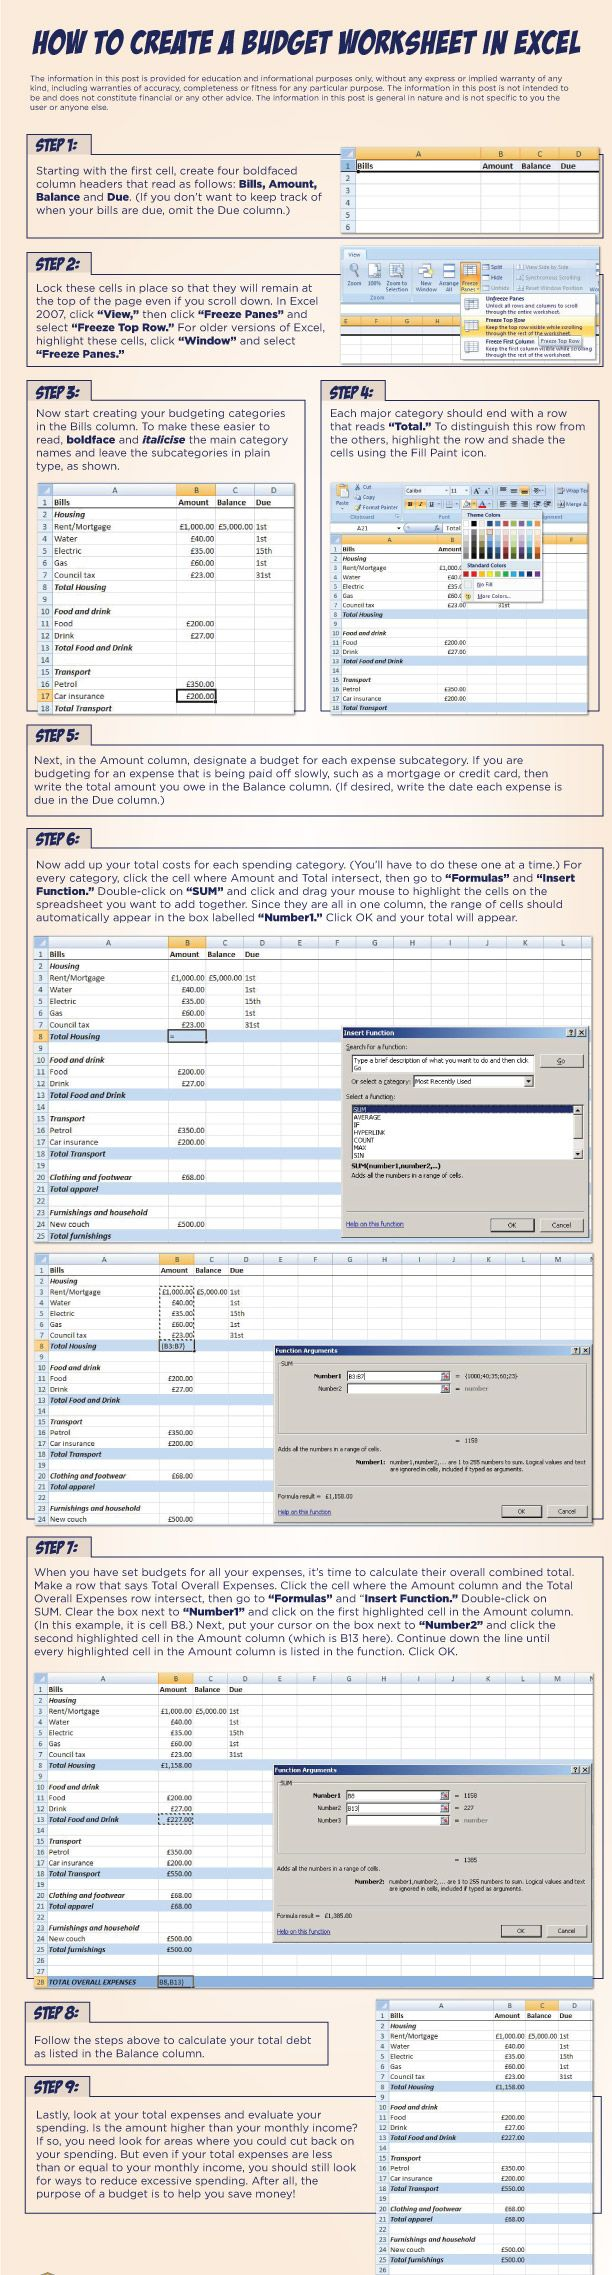 Worksheets Budgeting Worksheets For Adults best 25 budgeting worksheets ideas on pinterest budget planner learn how to create a worksheet in excel step by step